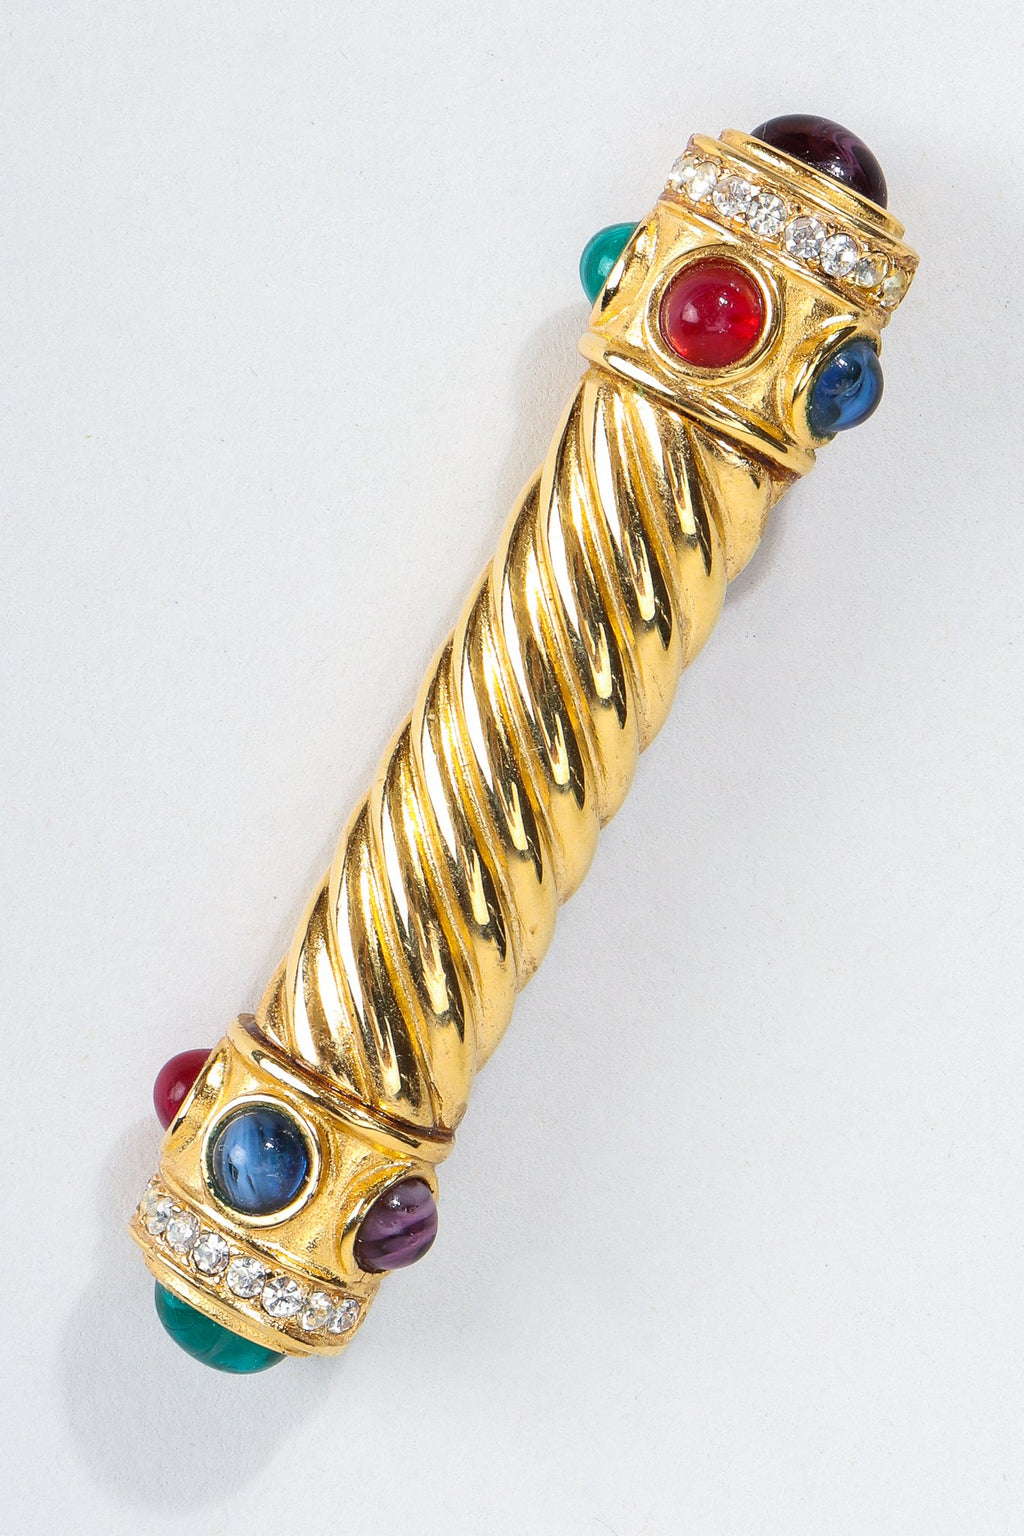 Vintage Givenchy Jeweled Gold Braid Bar Brooch Pin at Recess Los Angeles